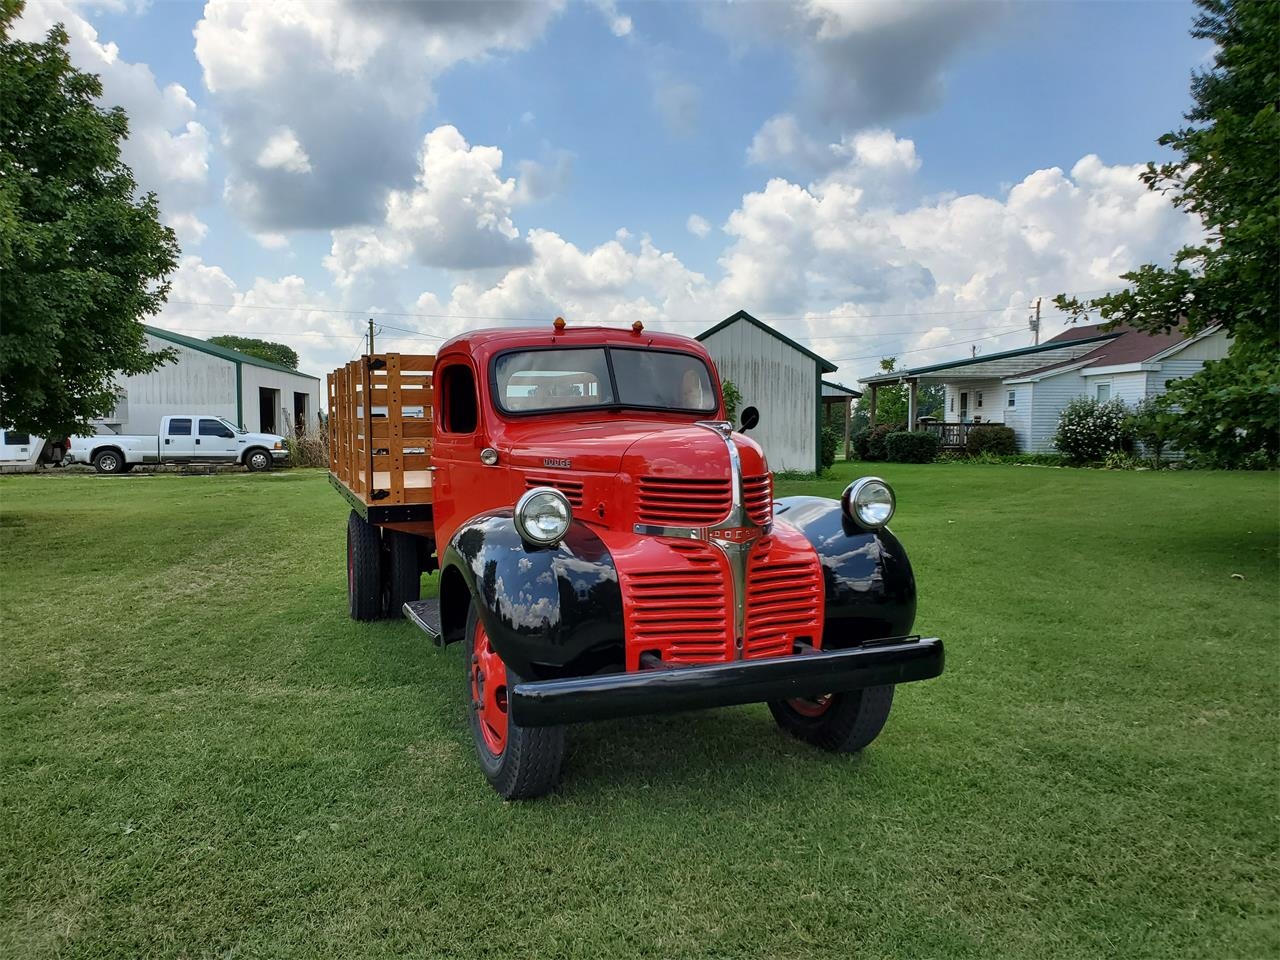 Large Picture of '46 Dodge 1 Ton Pickup - $31,500.00 Offered by a Private Seller - QO6R